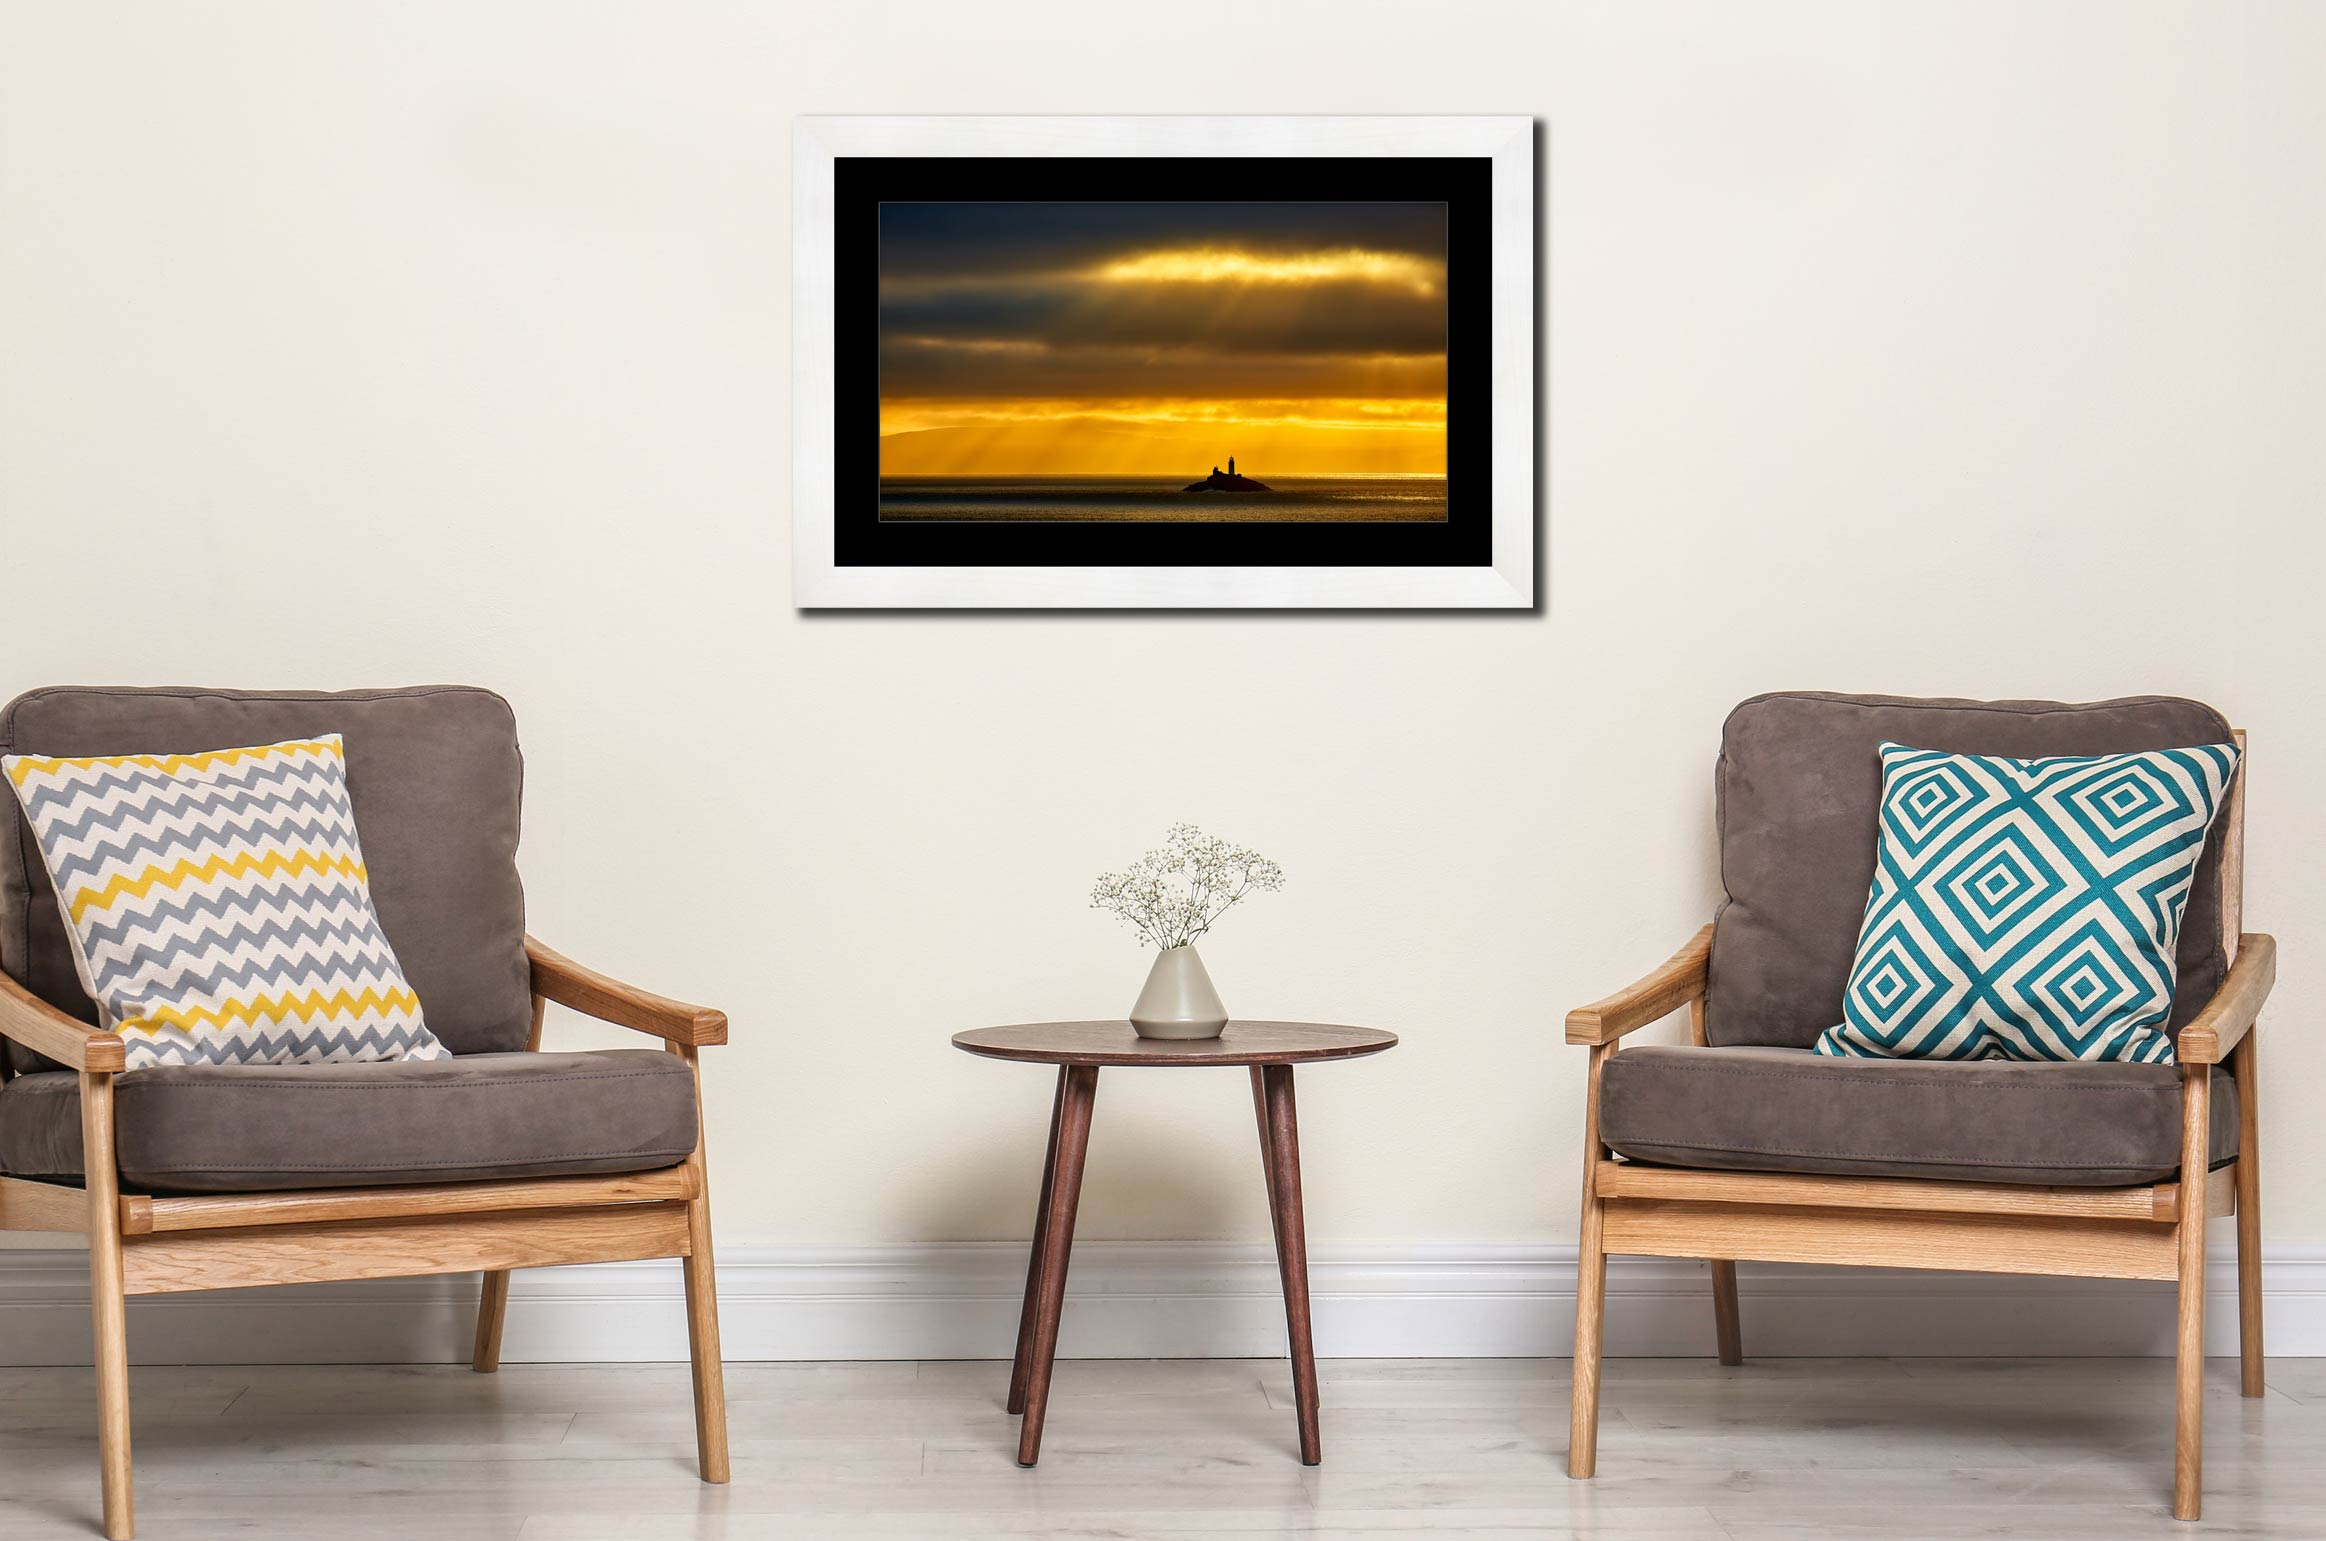 Morning Rays Over Godrevy Lighthouse - Framed Print with Mount on Wall